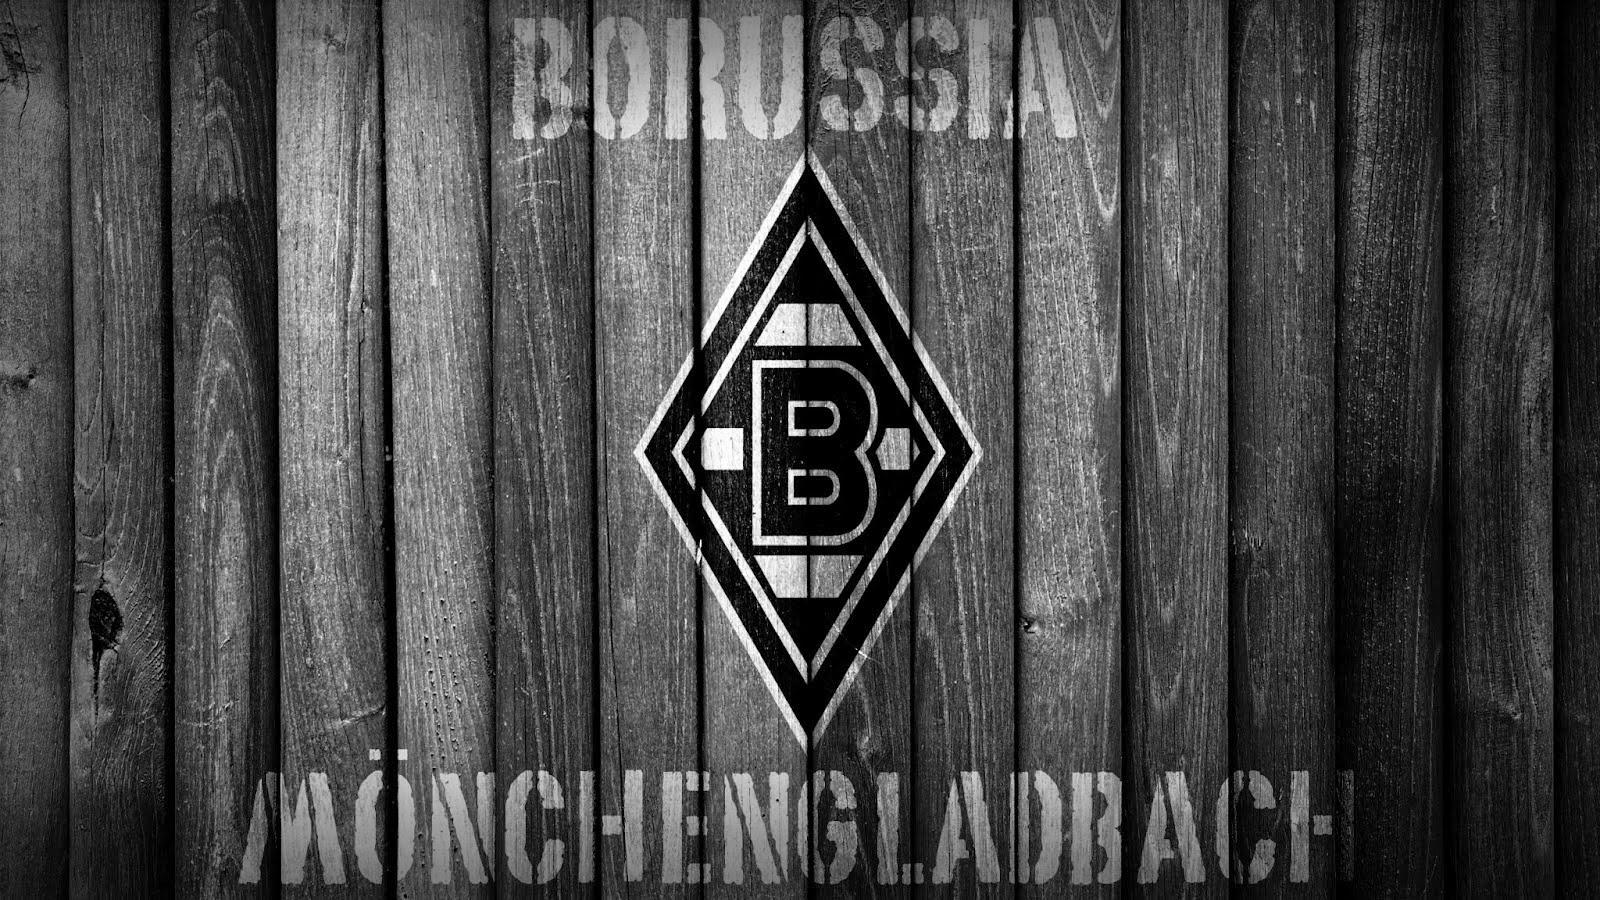 Download Borussia Monchengladbach Wallpapers in HD For Desktop or ...